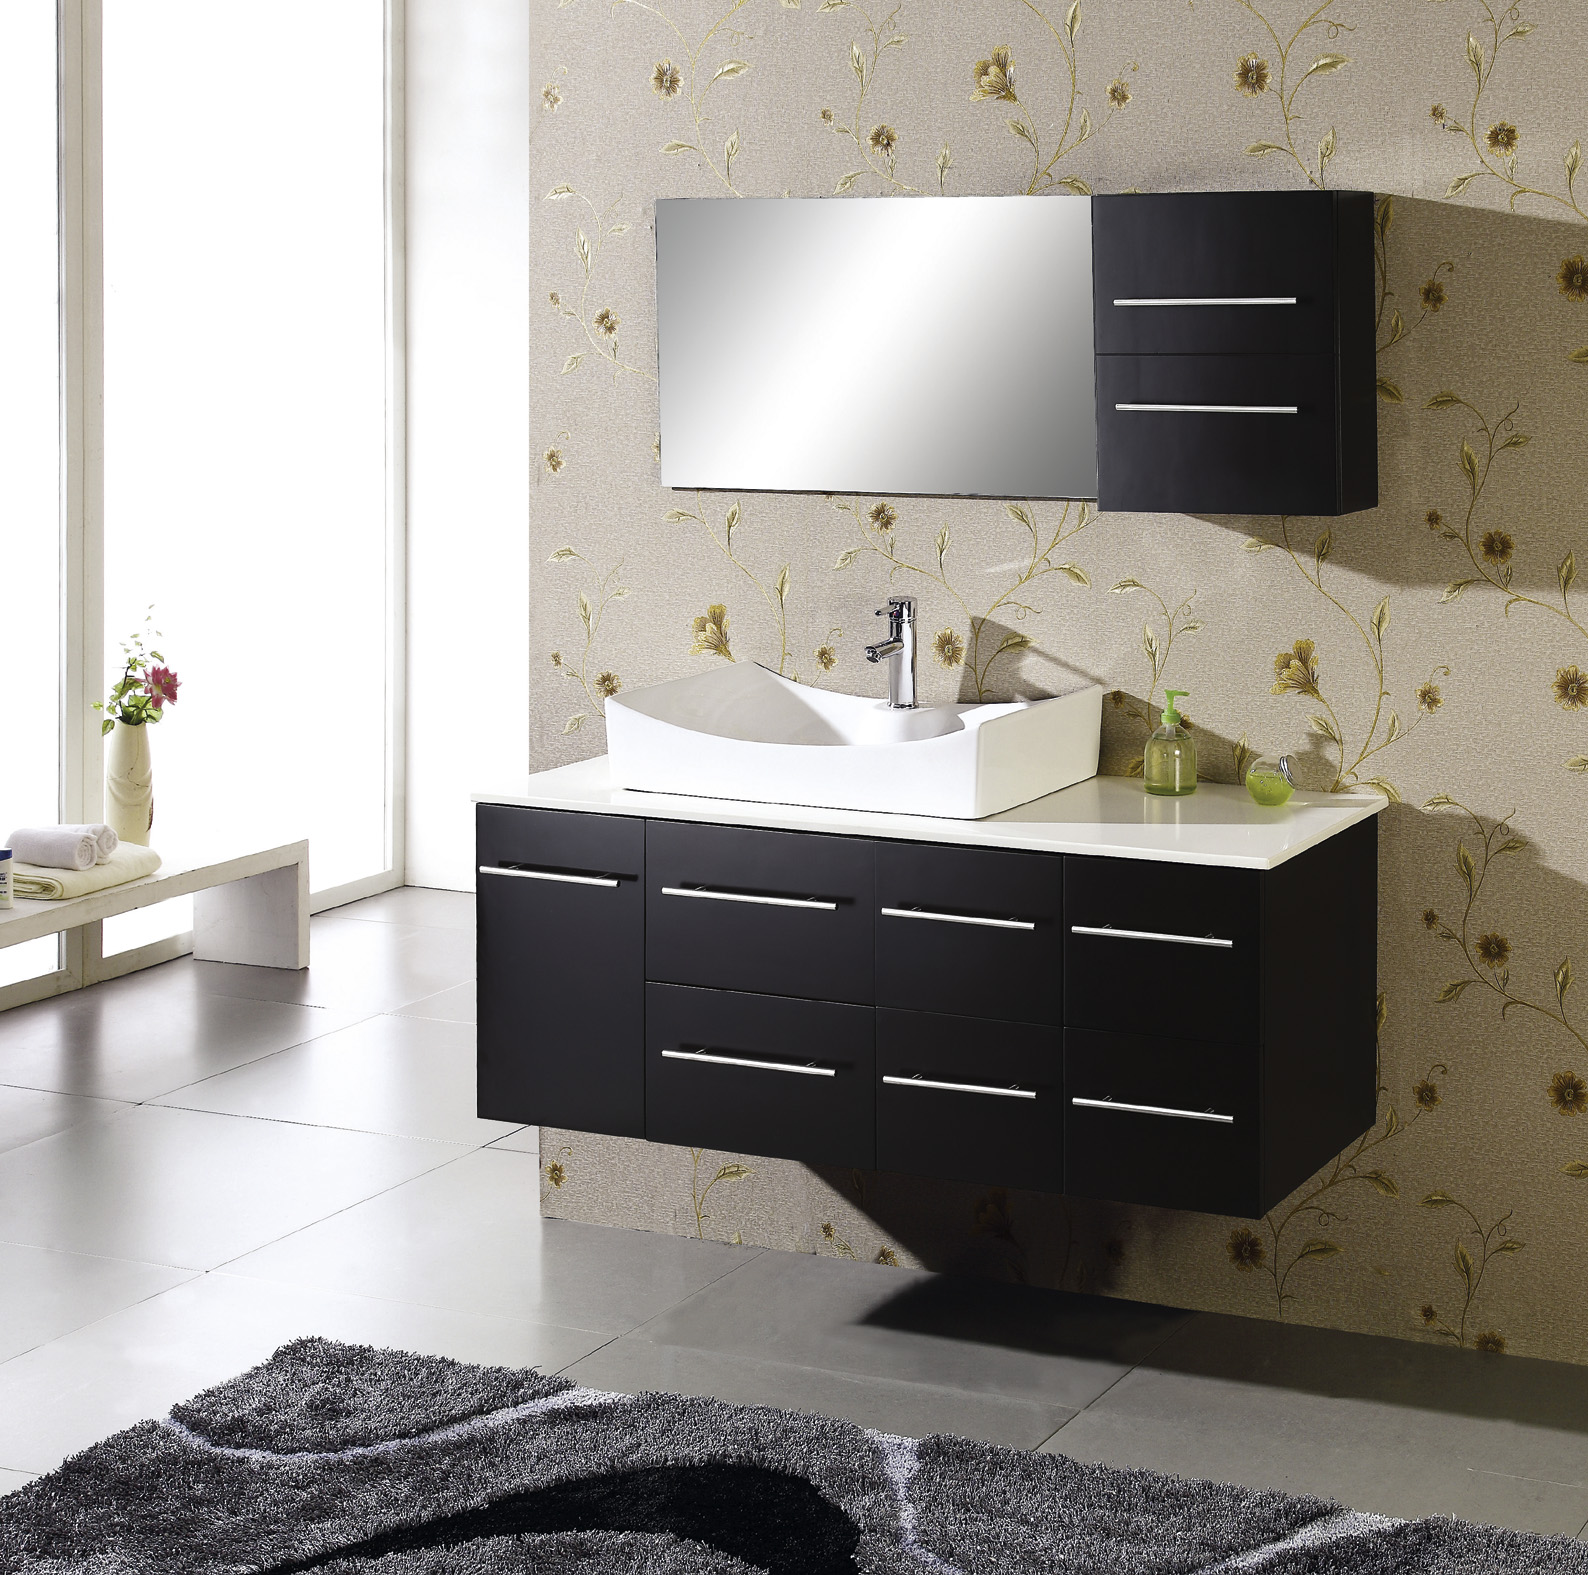 extraordinary bathroom modern inspiration vanities of ideas cabinet cabinets